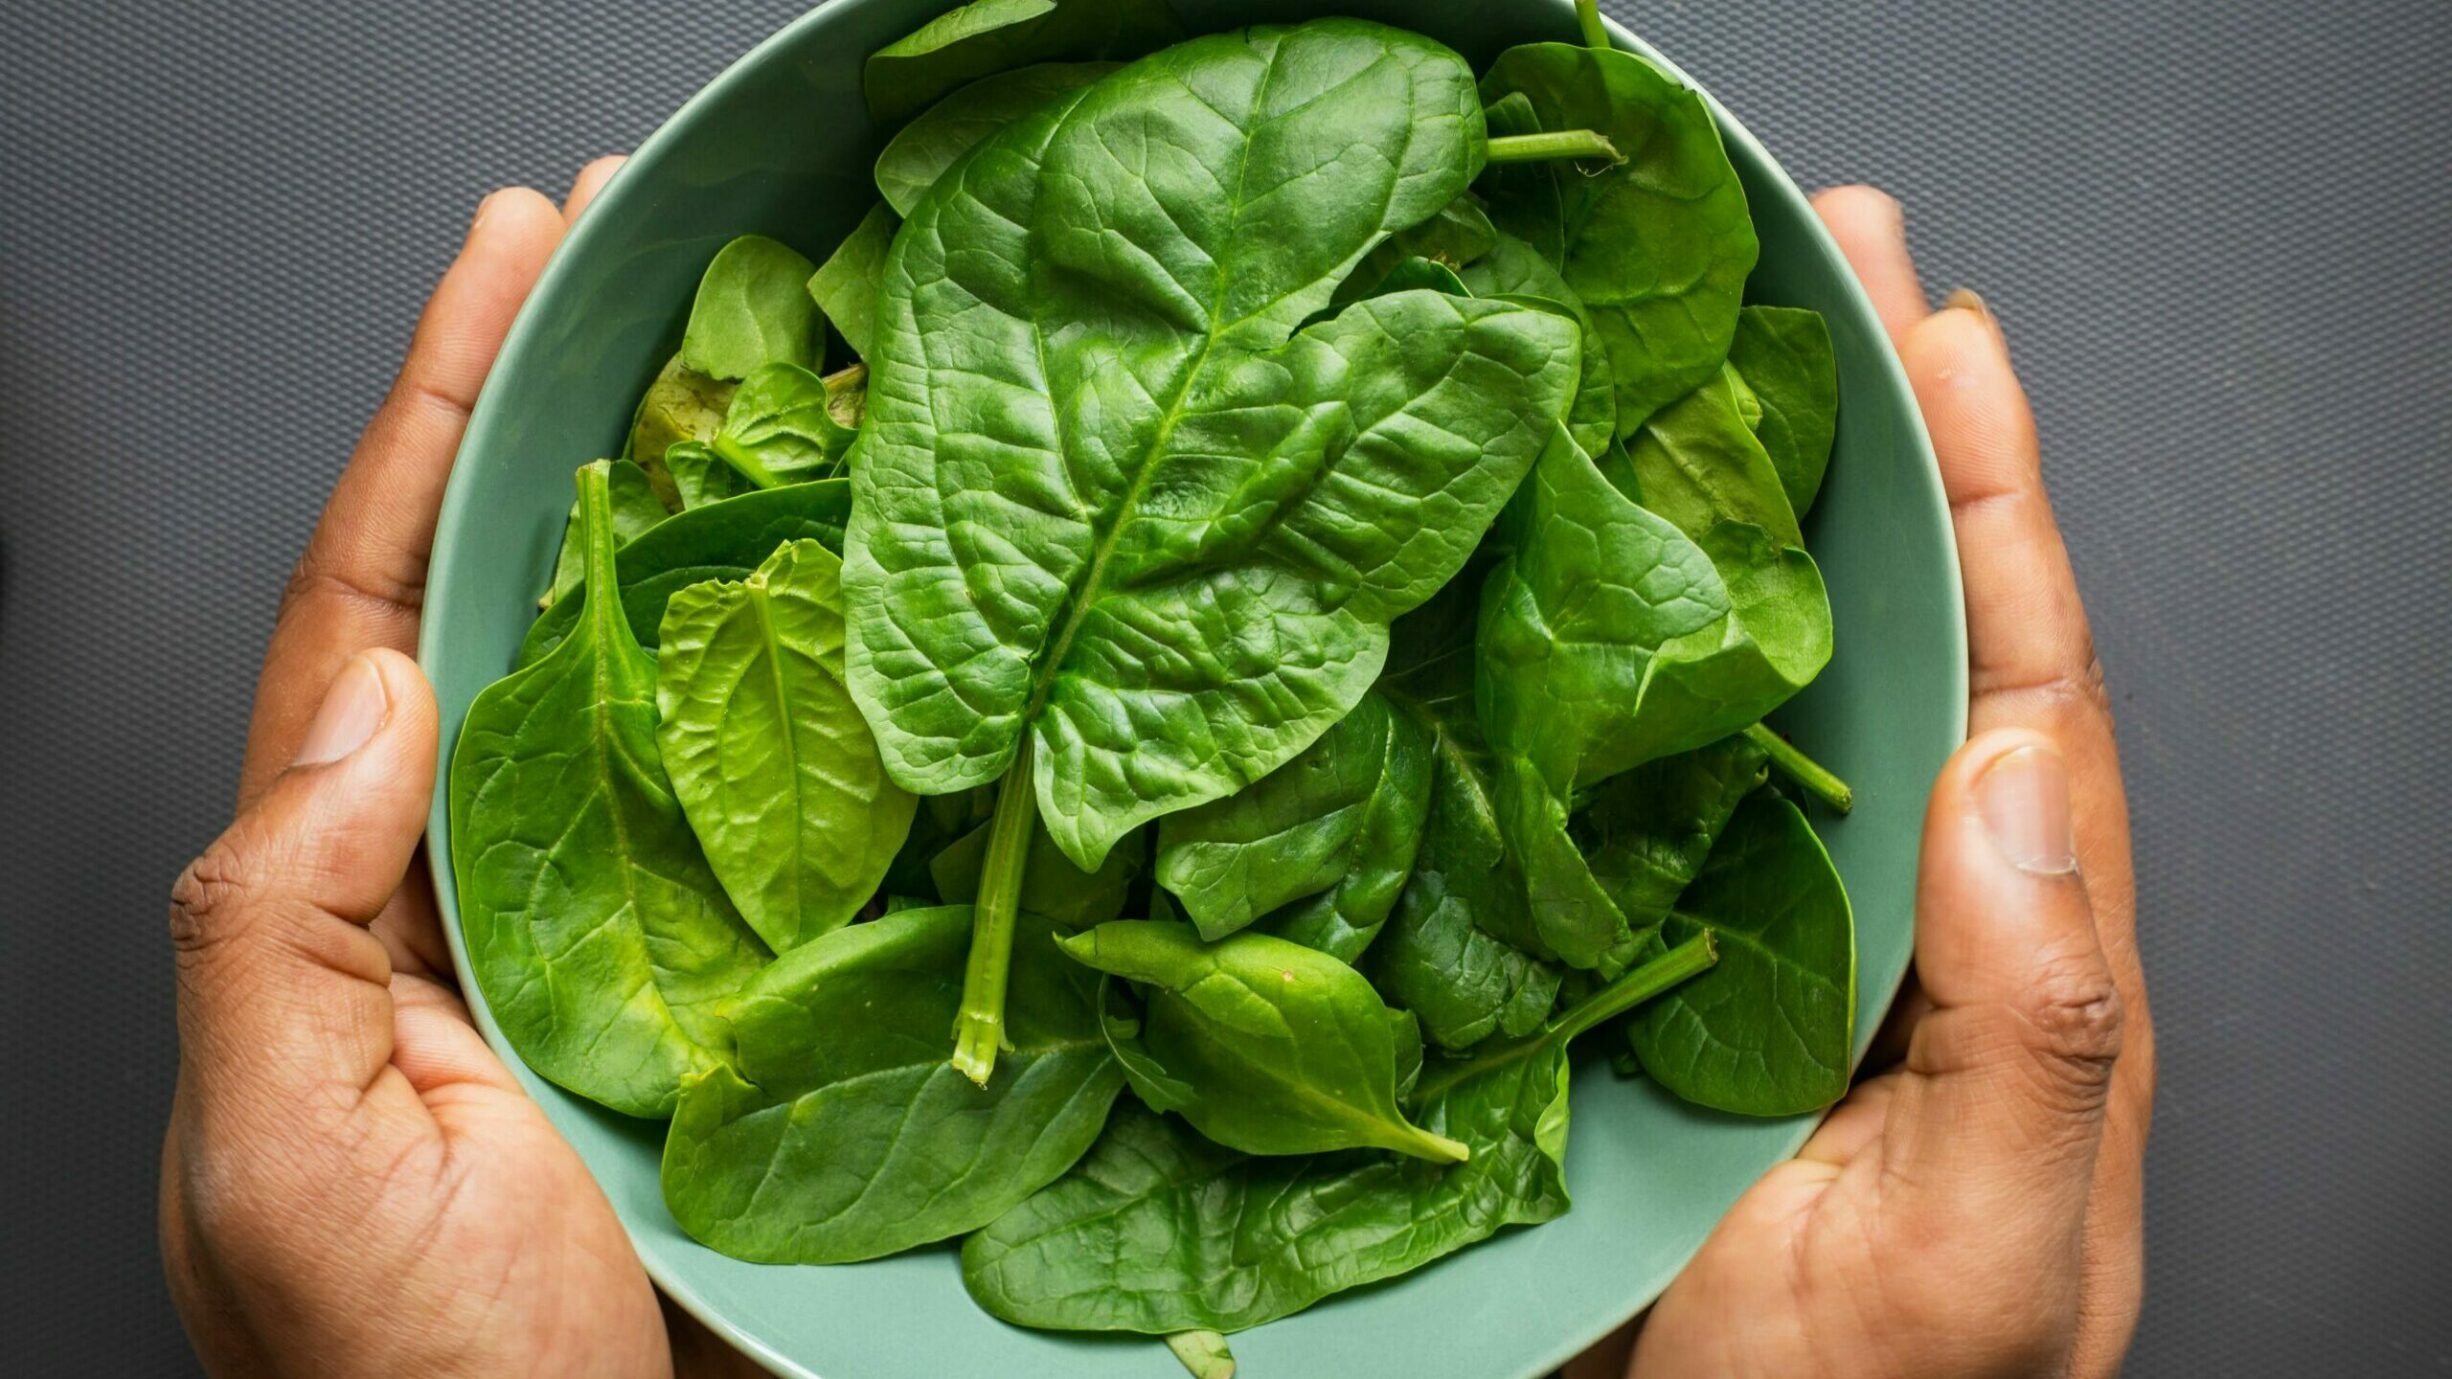 hands holding a bowl of spinach